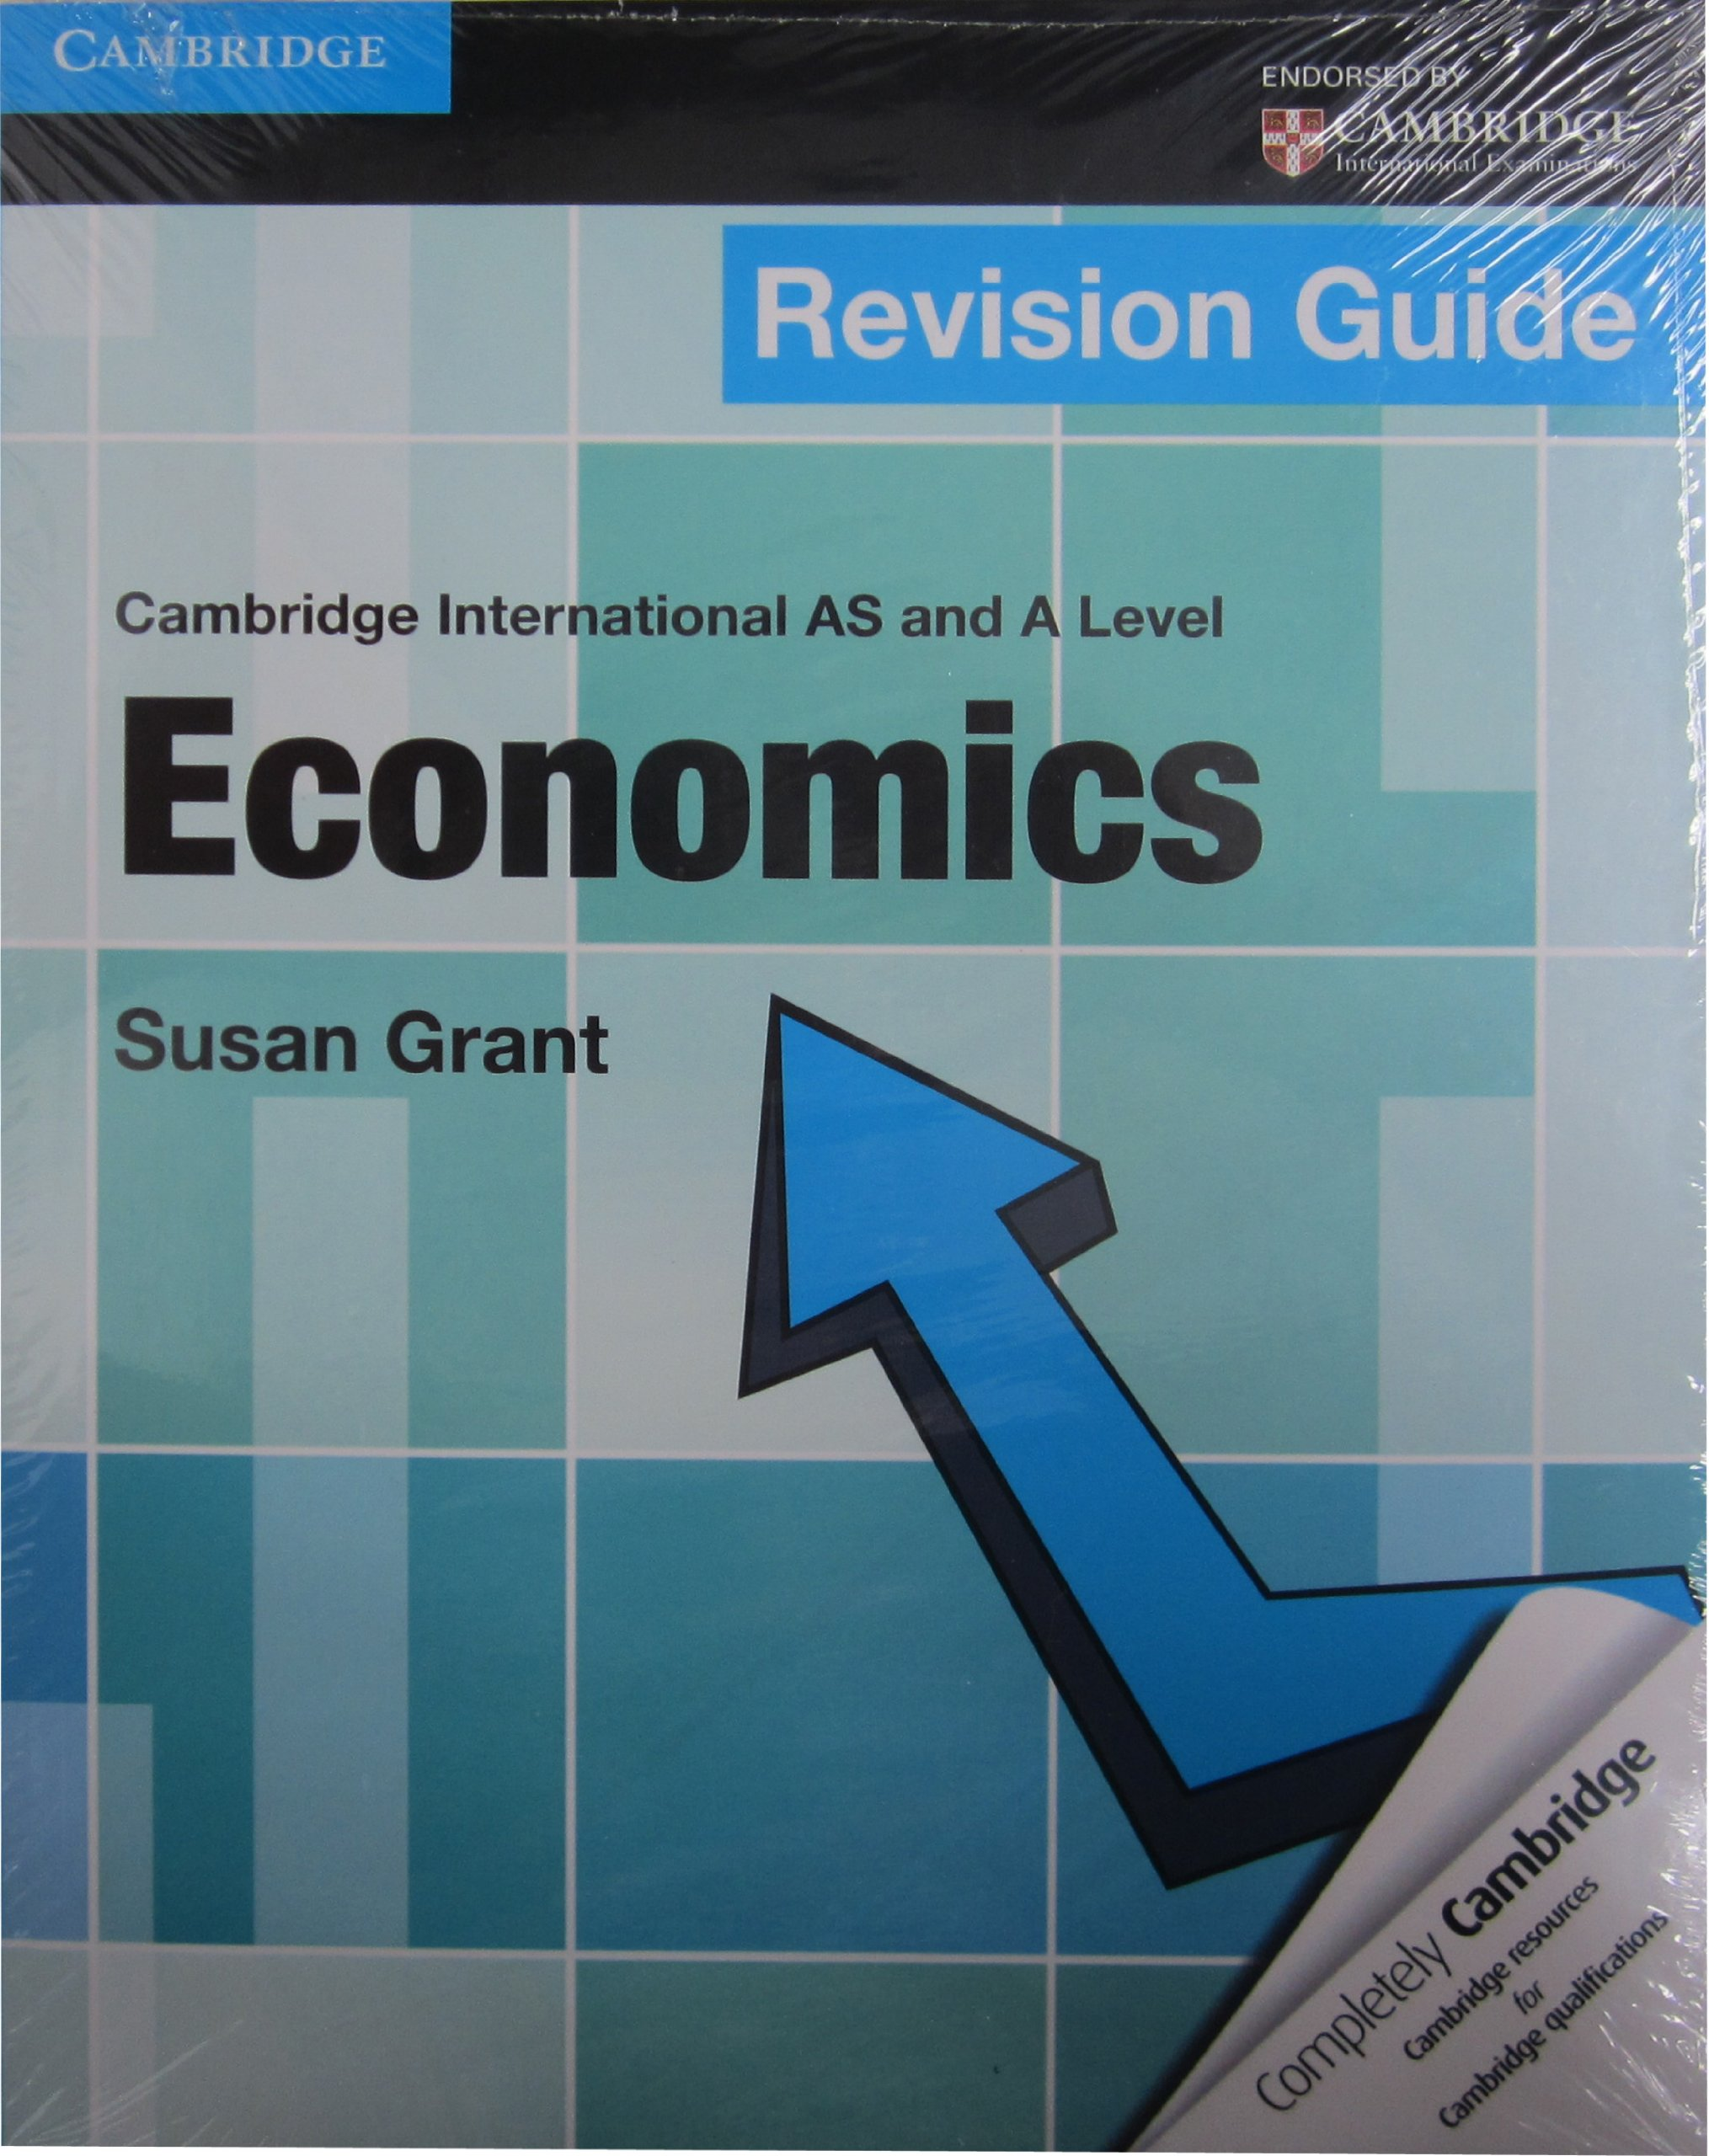 Cambridge international as and a level economics revision guide.